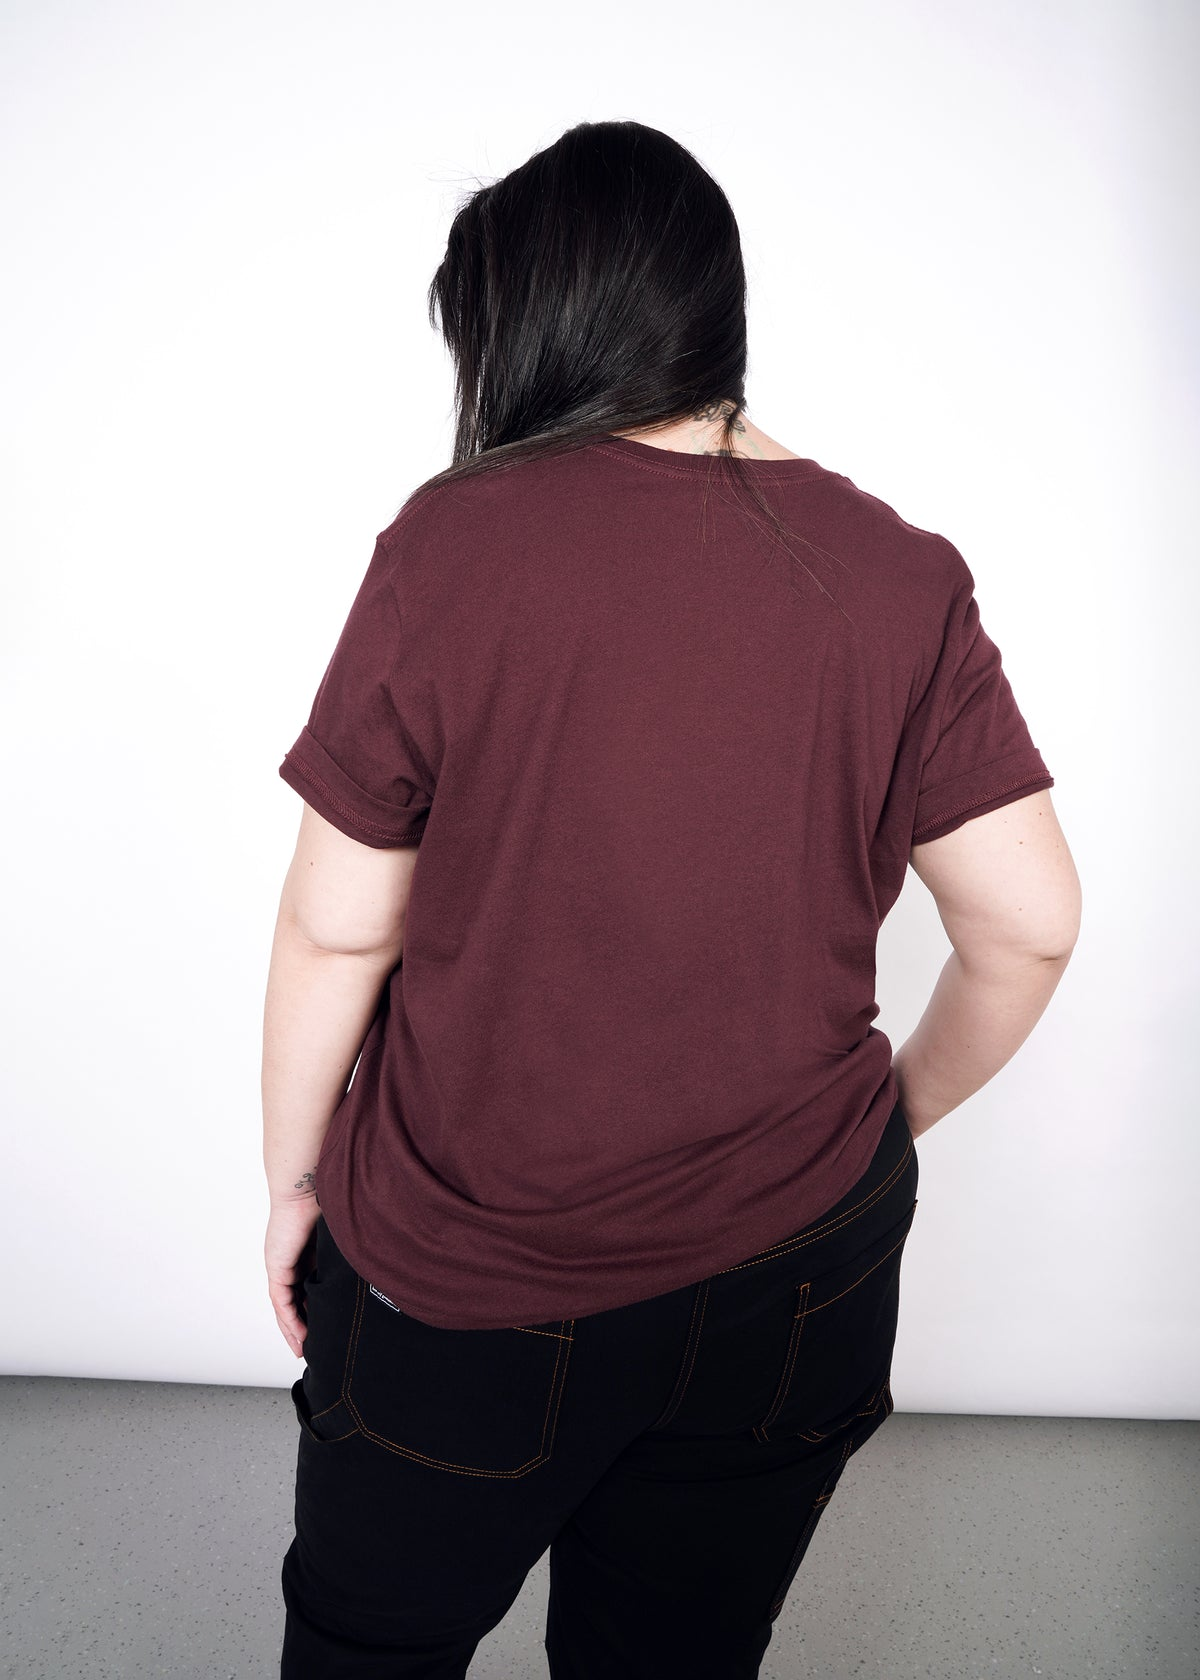 Back view of model wearing burgundy merlot graphic tee in size XXL, untucked, paired with black pants